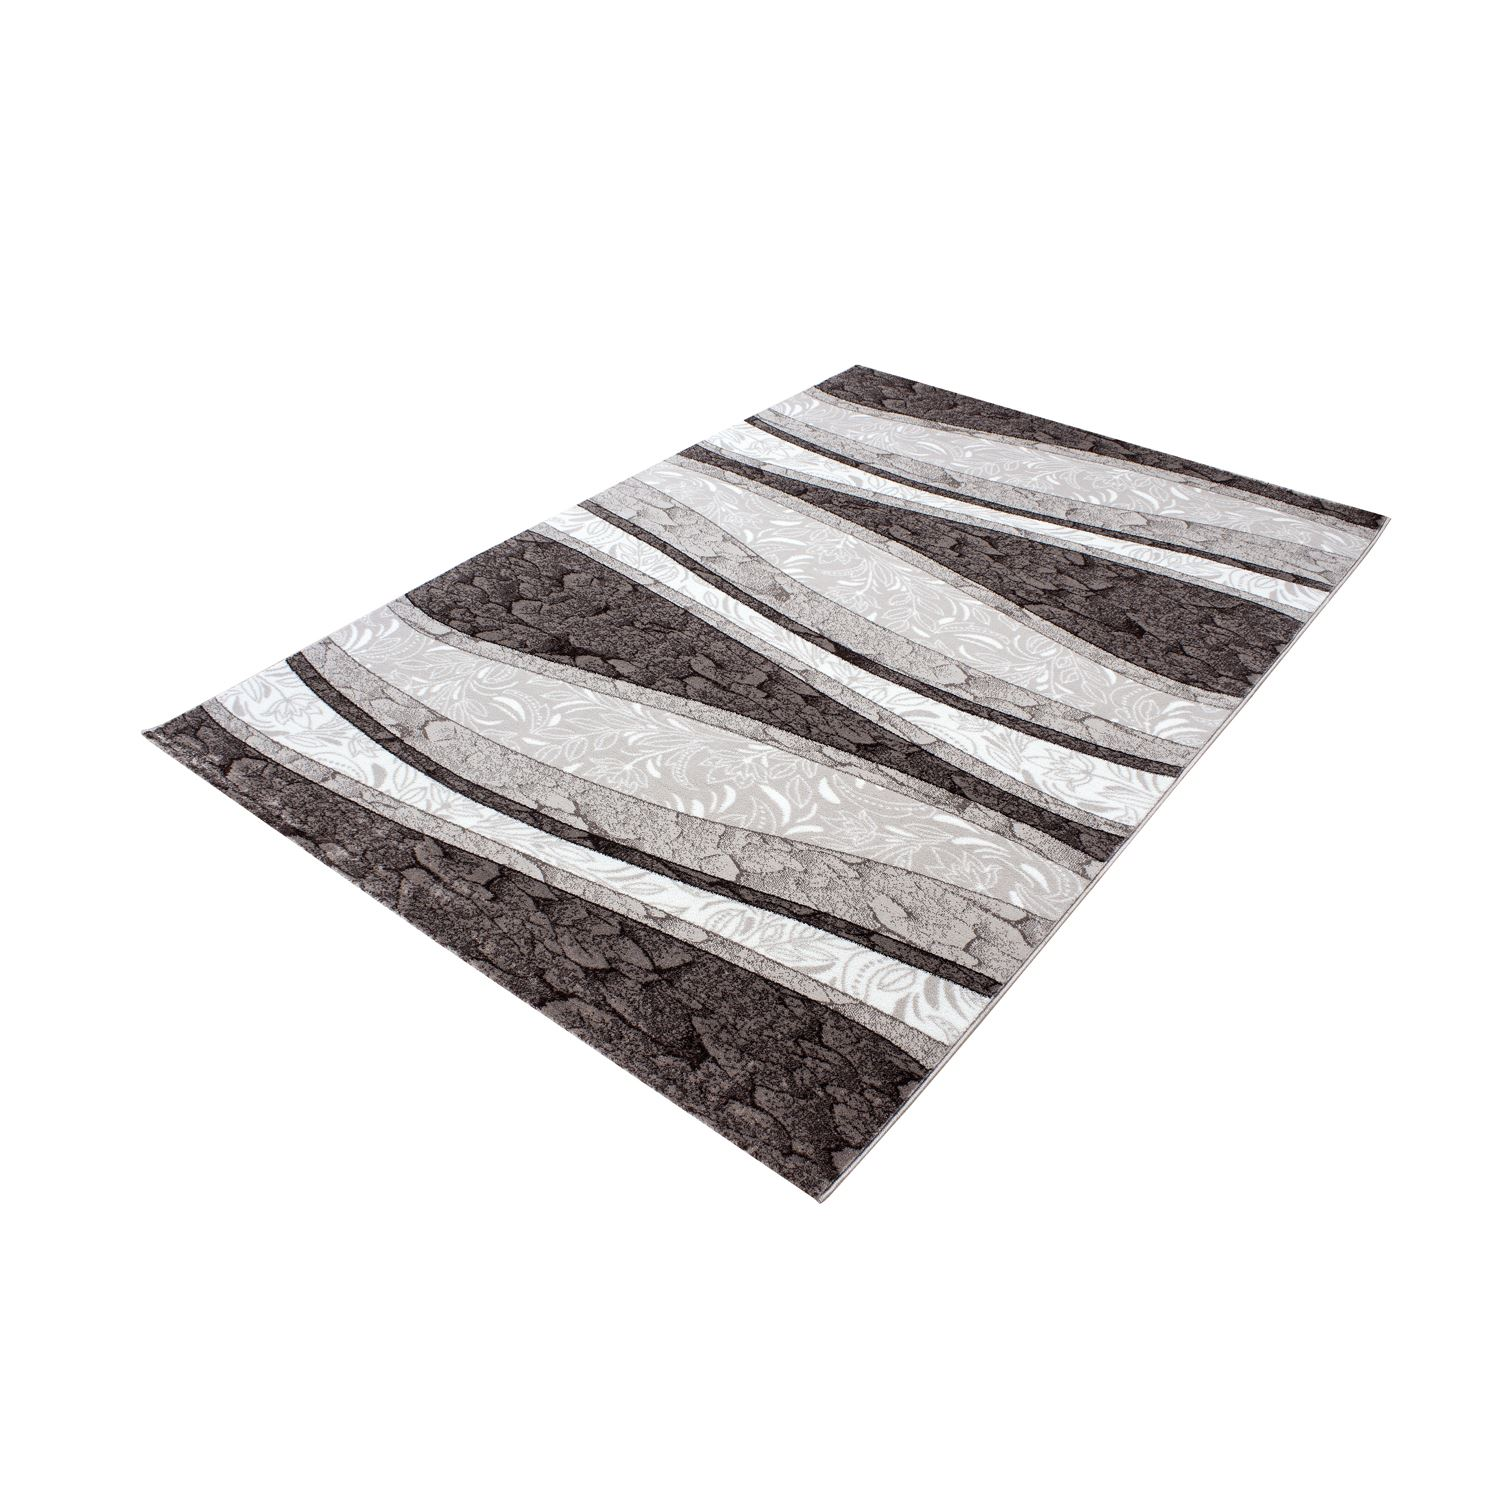 Black And White Rug Ebay Uk: Modern Contemporary Squares Swirls Black Red Beige Grey